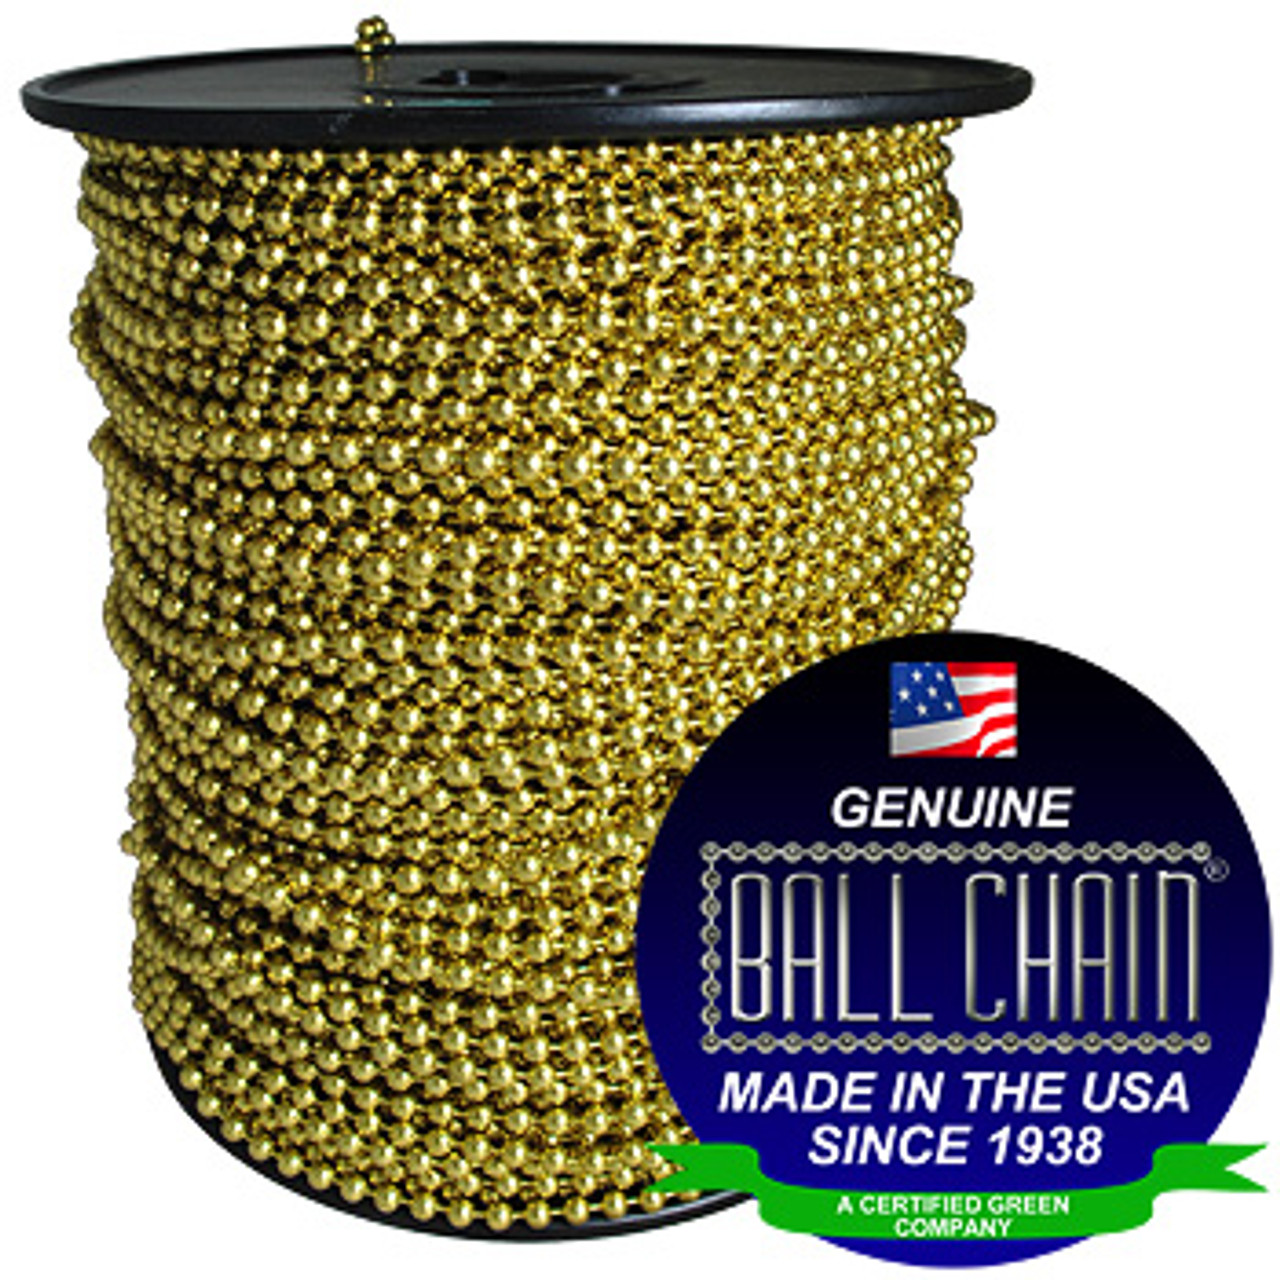 #6 Brass Plated Steel Ball Chain Spool. Its base metal, steel, provides added strength and the brass plating gives the class gold hue shine.  The spool is the most effective way to purchase this chain at low wholesale prices.